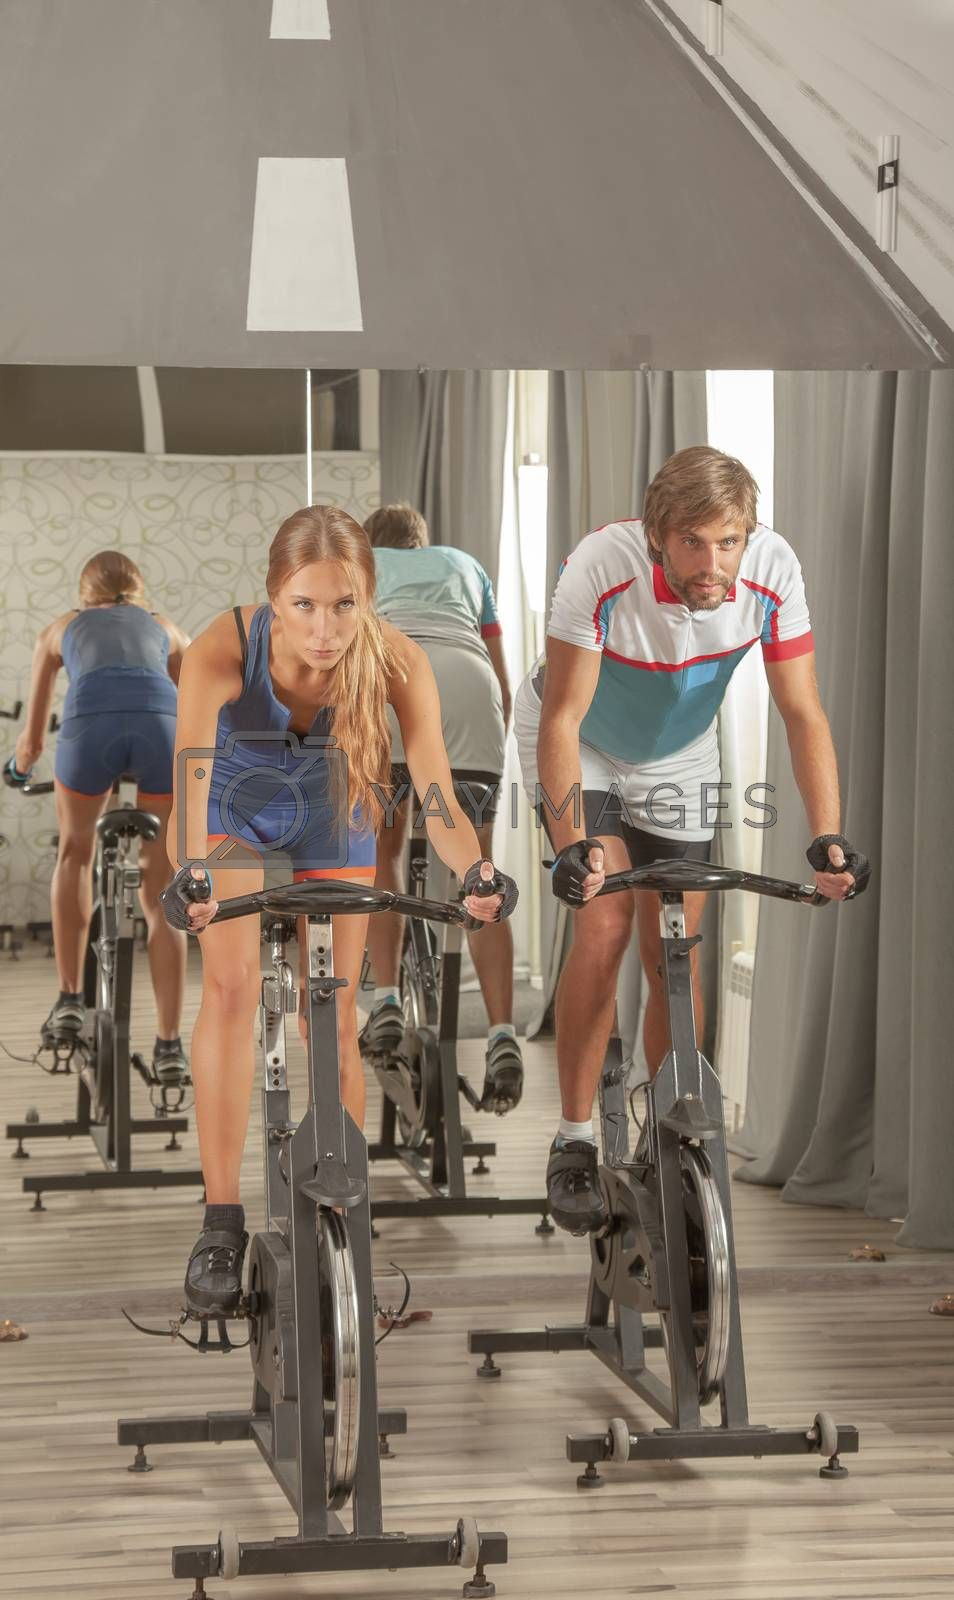 Royalty free image of Young Active People Gym Cycling by vilevi